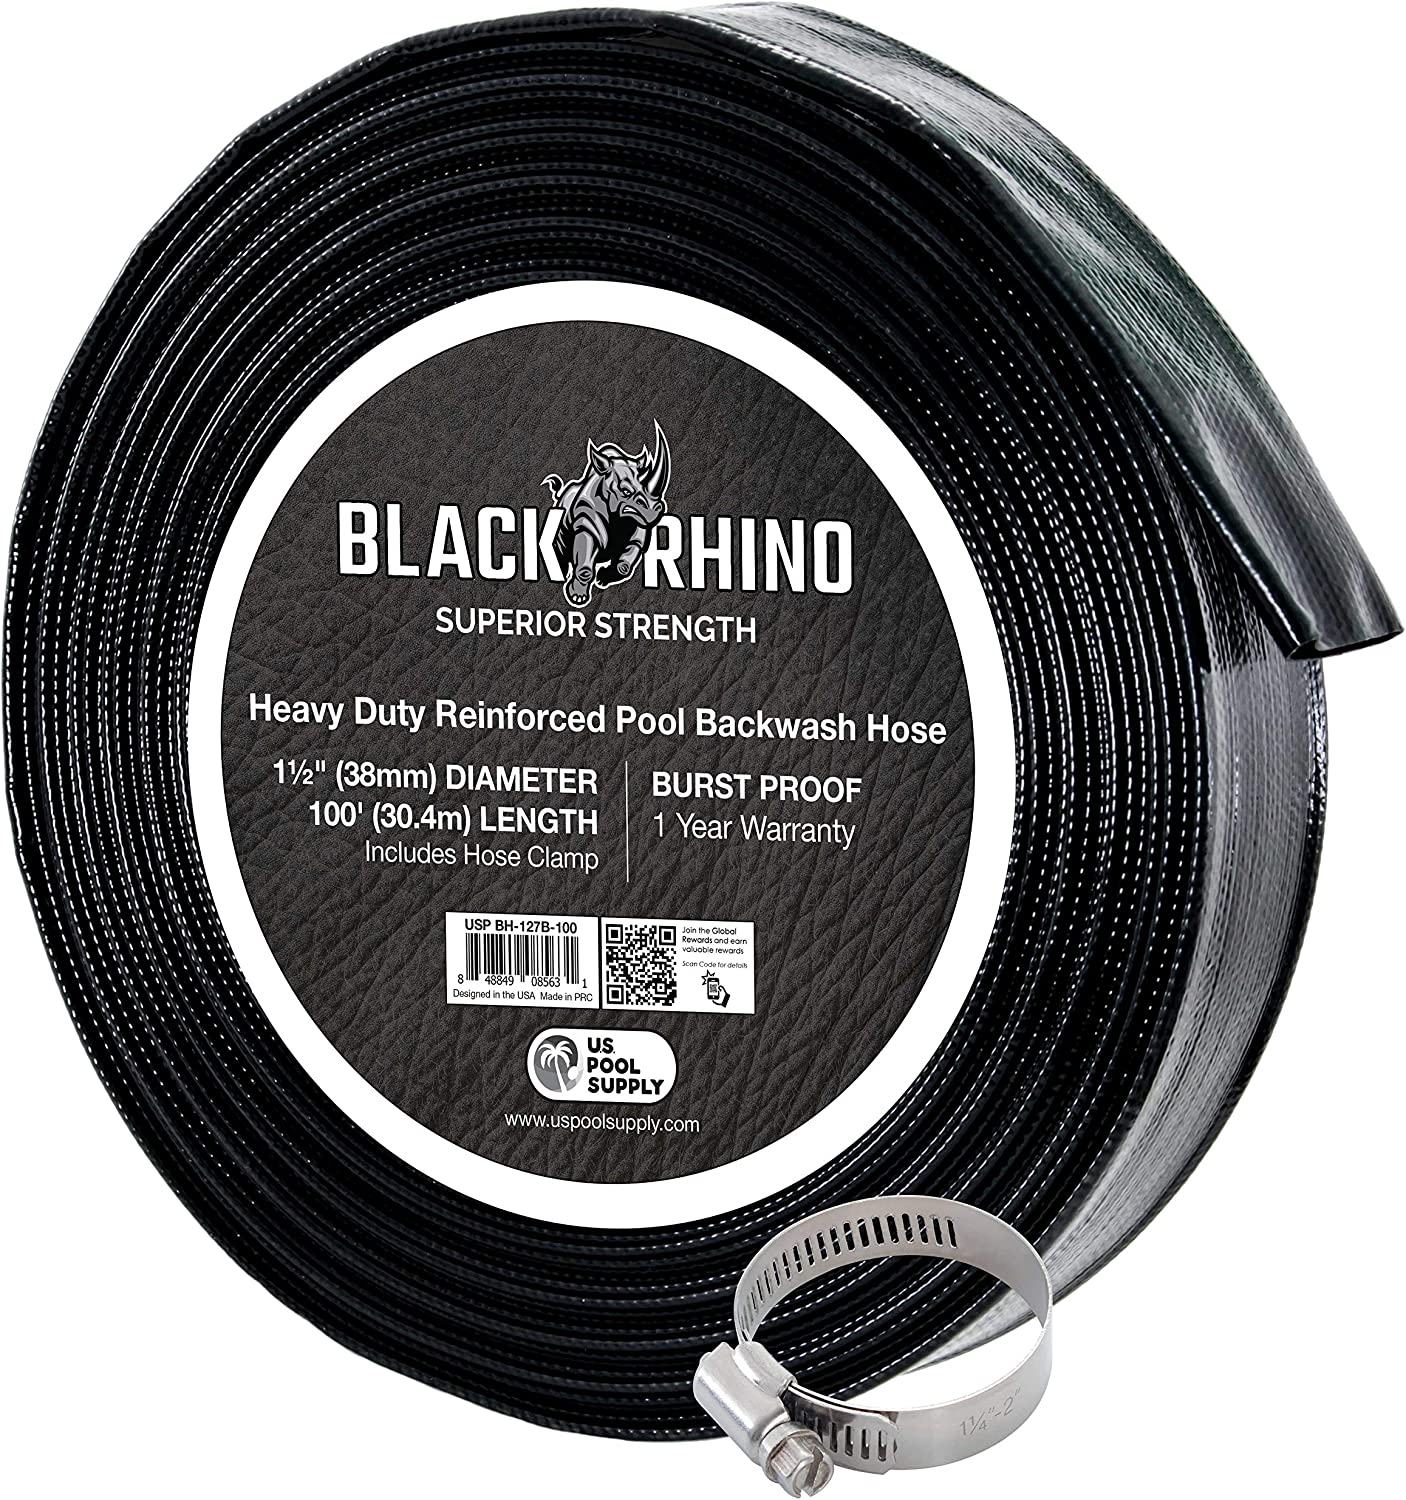 Pool Supply Black Rhino 1-1//2 x 100 Pool Backwash Hose with Hose Clamp Drain Clean Swimming Pools U.S Filters - Weather Burst Resistant Thick 1.2mm 47mils Extra Heavy Duty Superior Strength